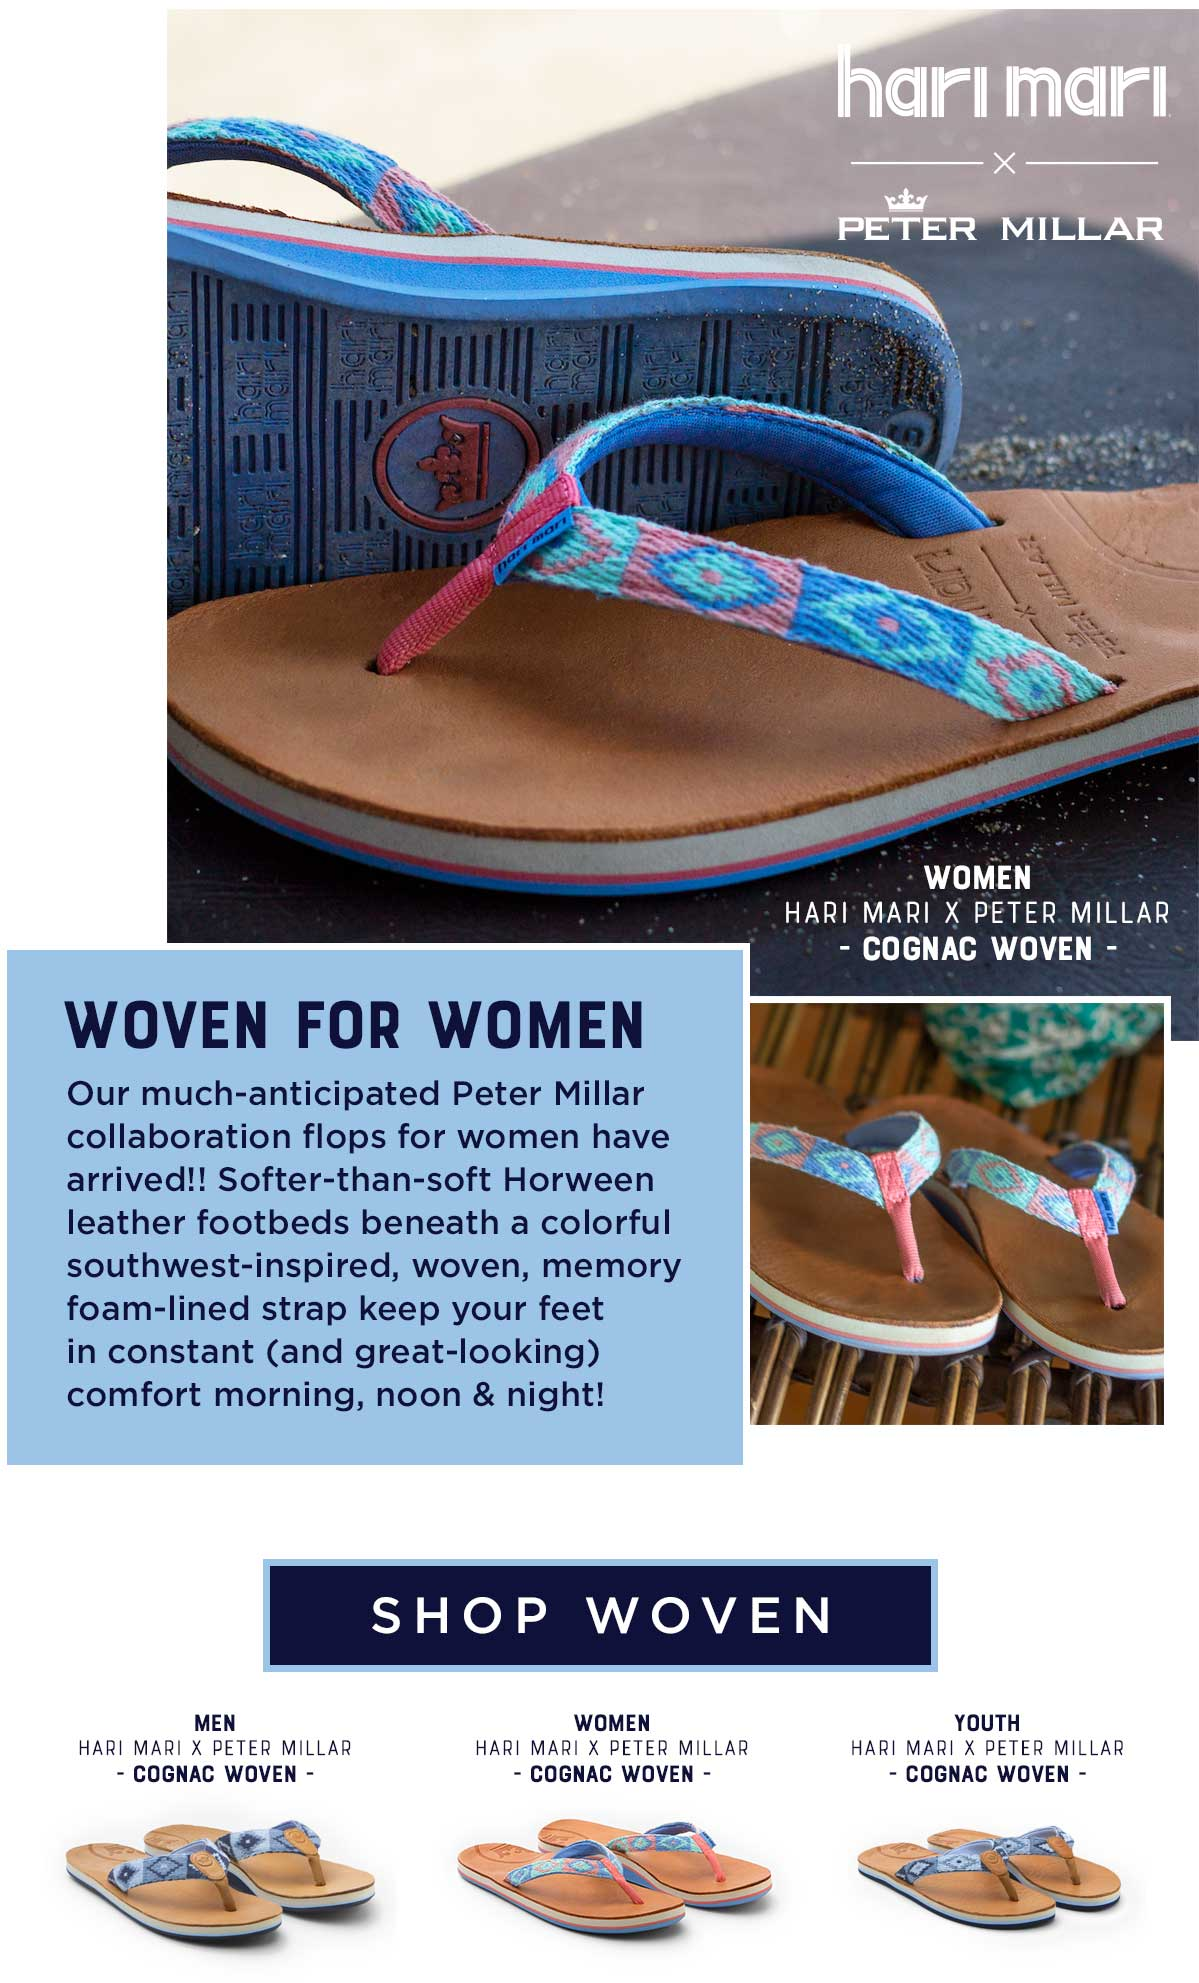 320c1fdf468 Our much-anticipated Peter Millar collaboration flops for women have  arrived!! Softer-